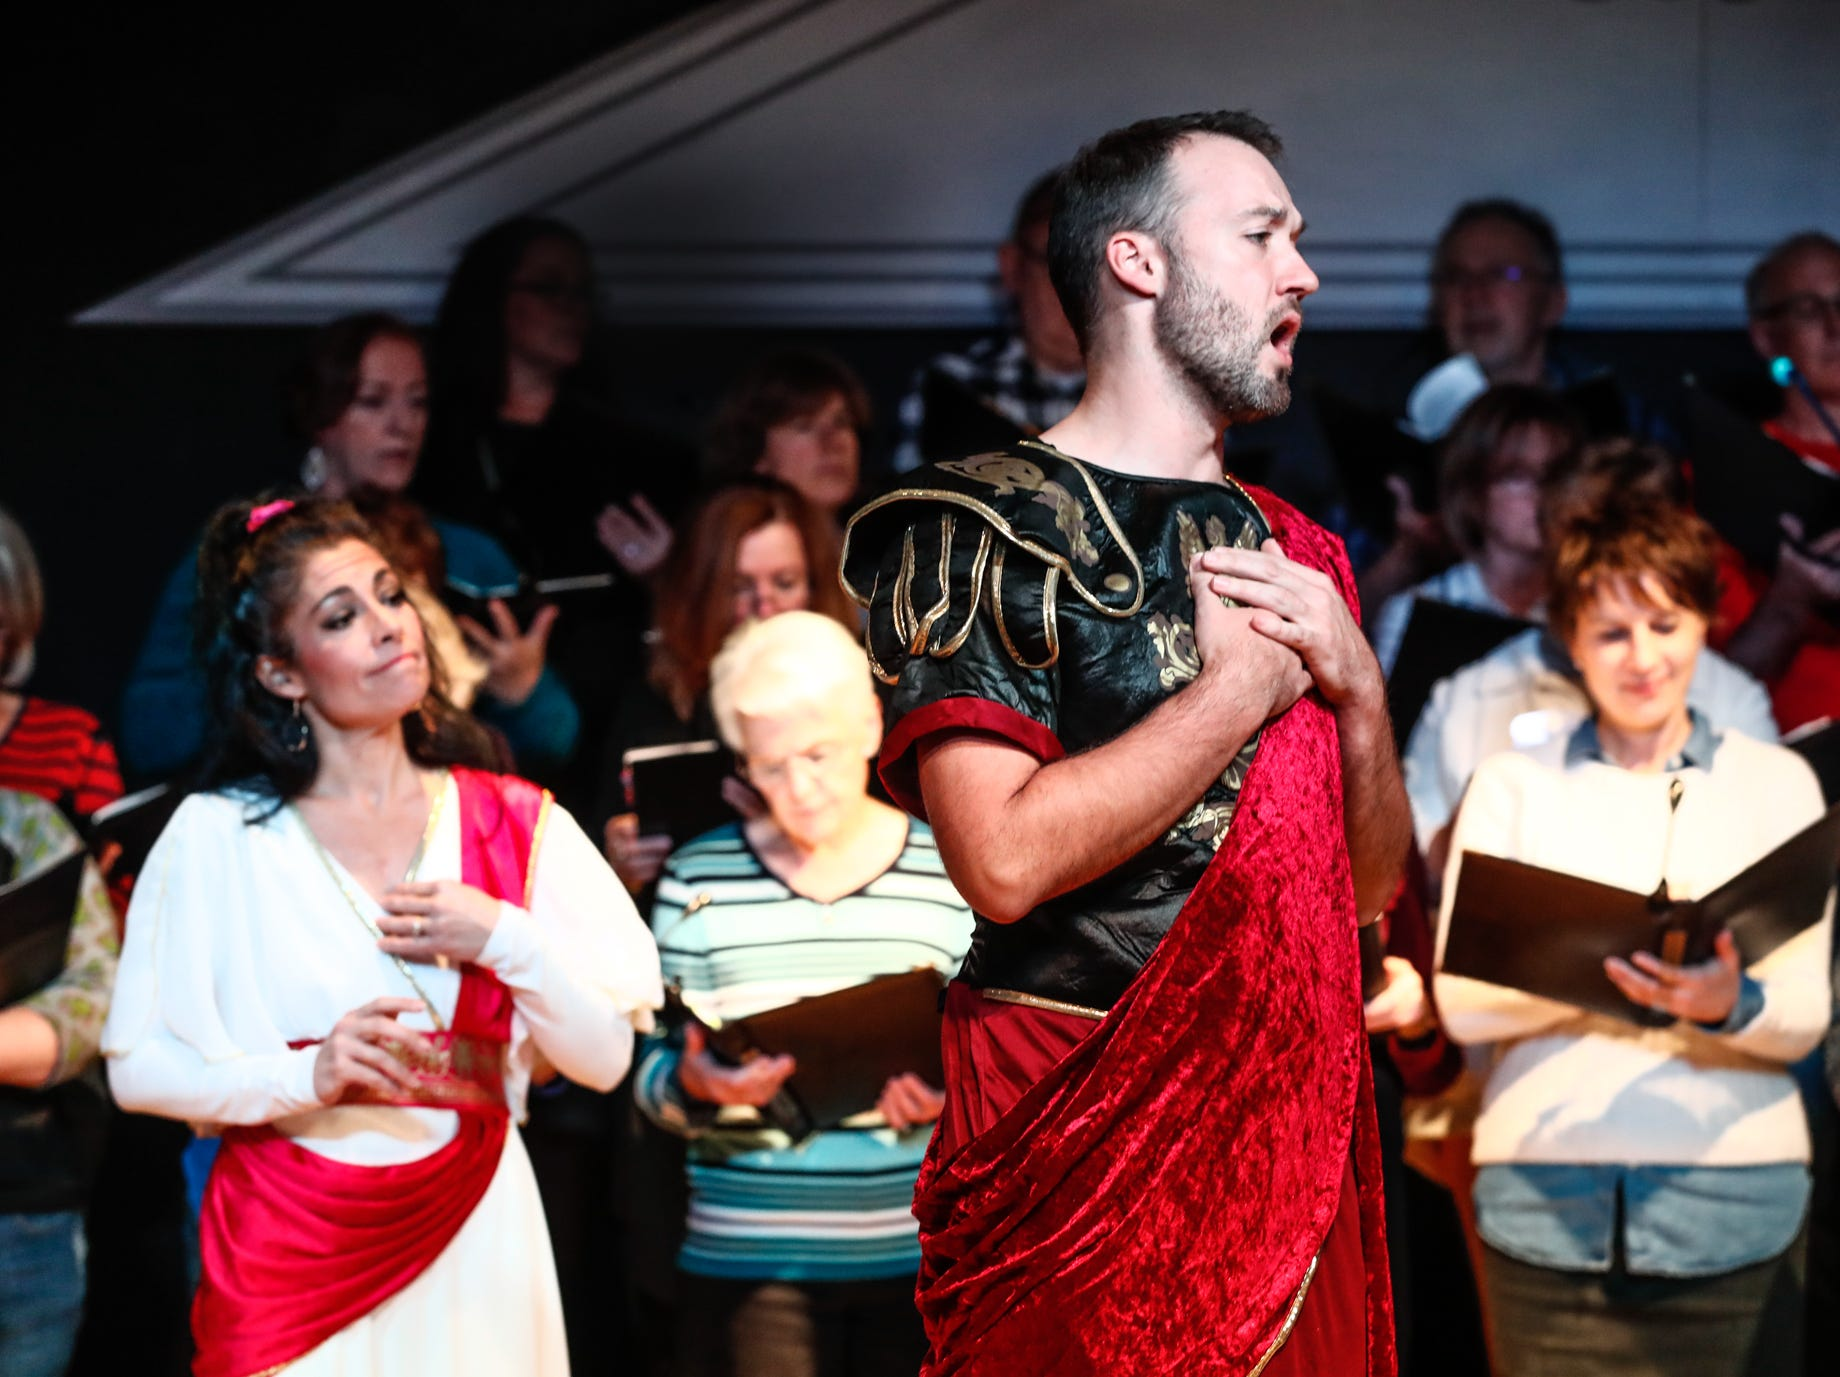 Heather Glover plays the bart of Belinda, left, and Sean Manterfield plays the part of Aeneas during a Fishers Music Works' Projekt: Opera rehearsal for Dido & Aeneas, at Ji-Eun Lee Music Academy in Fishers Ind. on Thursday Nov. 1, 2018.